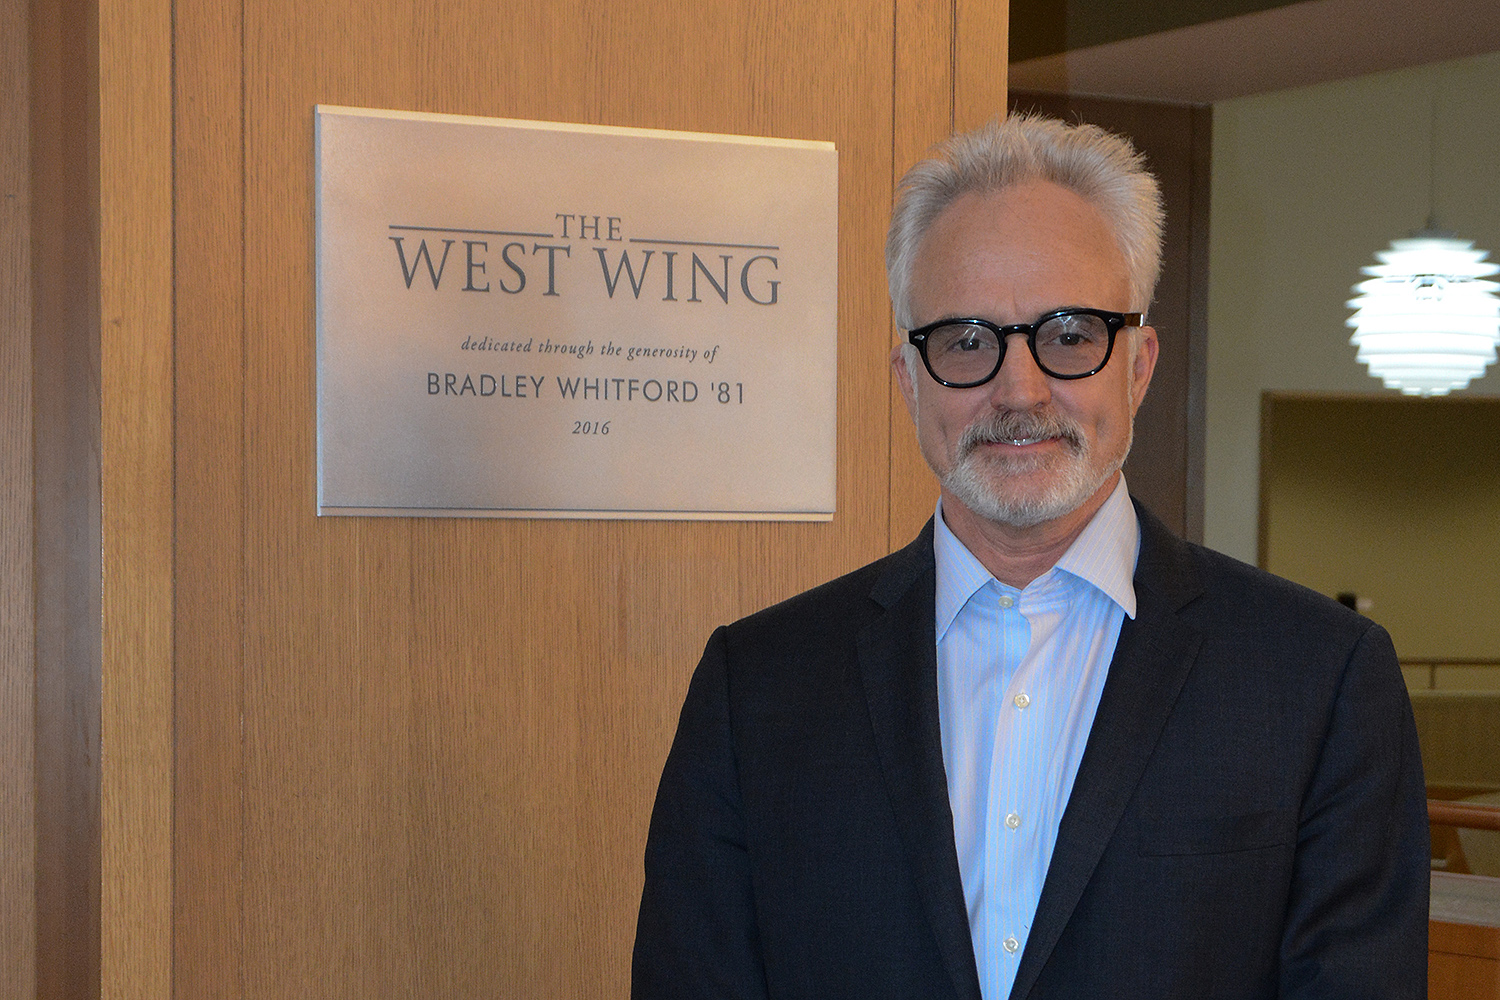 Bradley Whitford, an actor, played White House Deputy Chief of Staff Josh Lyman on the NBC television drama The West Wing. Whitford was nominated for three consecutive Emmy Awards from 2001 to 2003 for Outstanding Supporting Actor in a Drama Series for his role on The West Wing, winning the award in 2001. He received a second Emmy Award in 2015 for his role in Transparent.